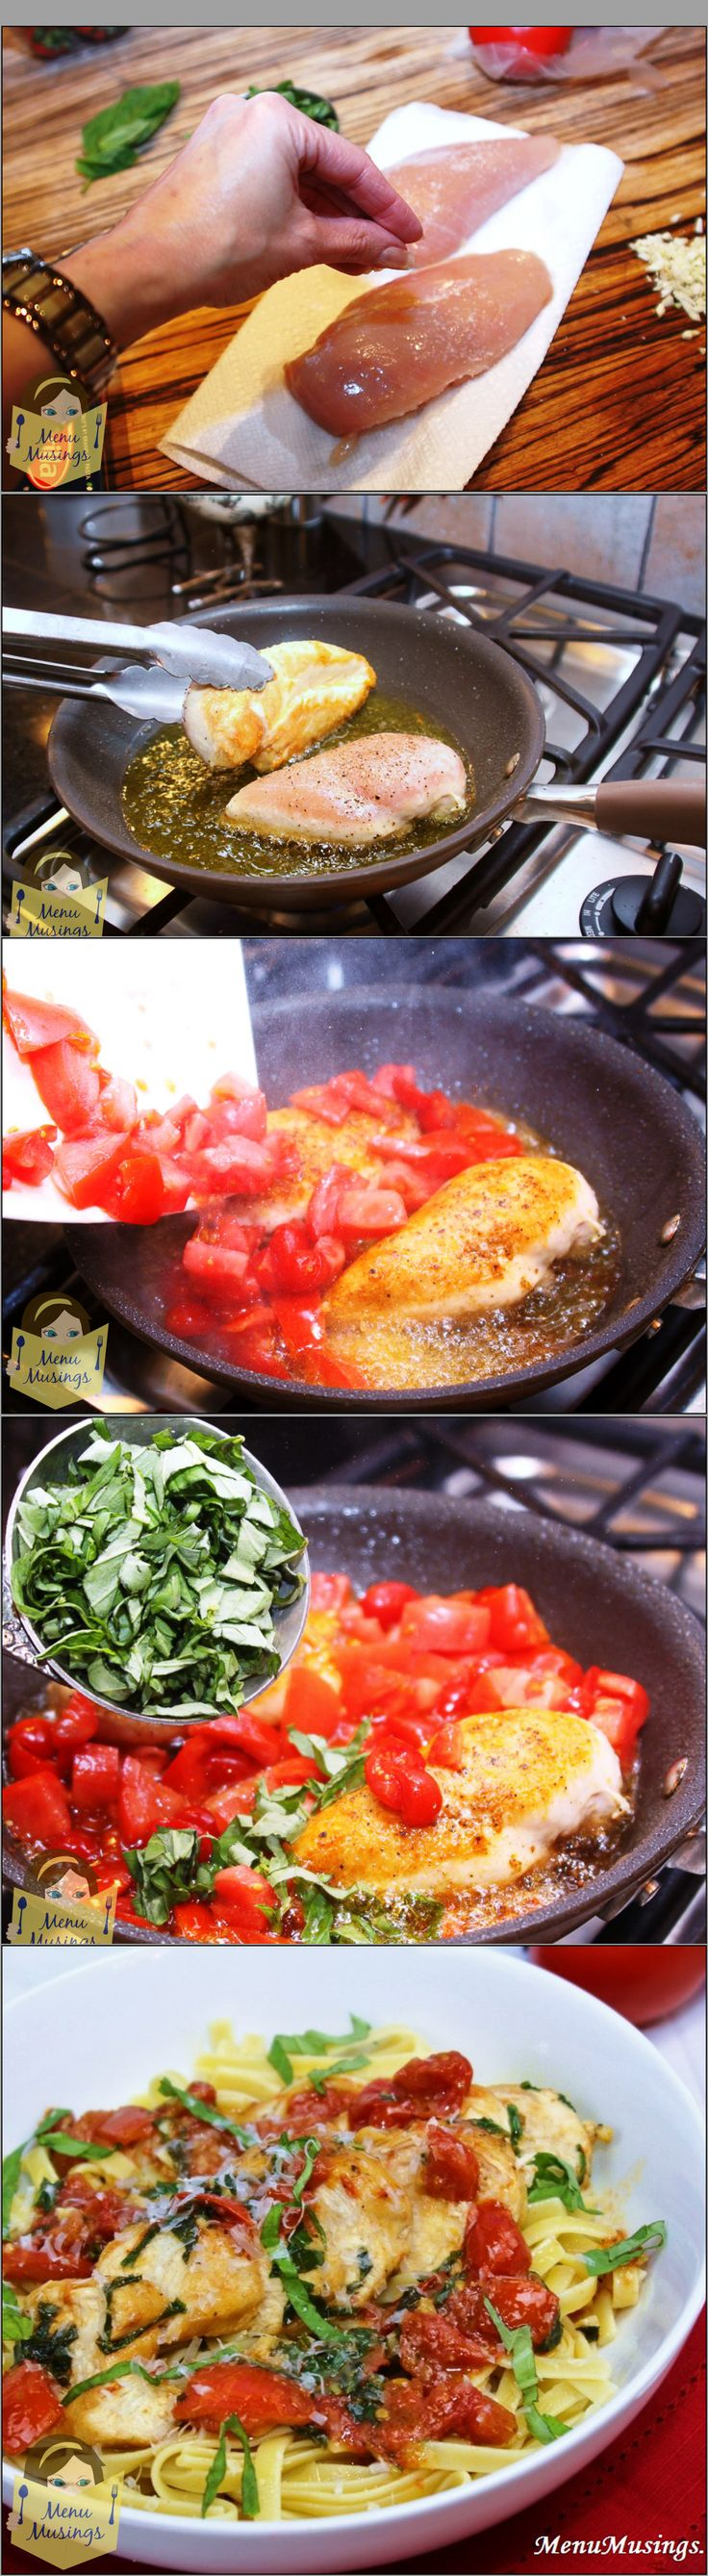 Tomato Basil Chicken - over 900K people can't be wrong! This step-by-step photo recipe is a huge hit with families, date night, and company.. and comes in under 30 minutes with all fresh ingredients. <3 <3 Look for it in the cookbook!